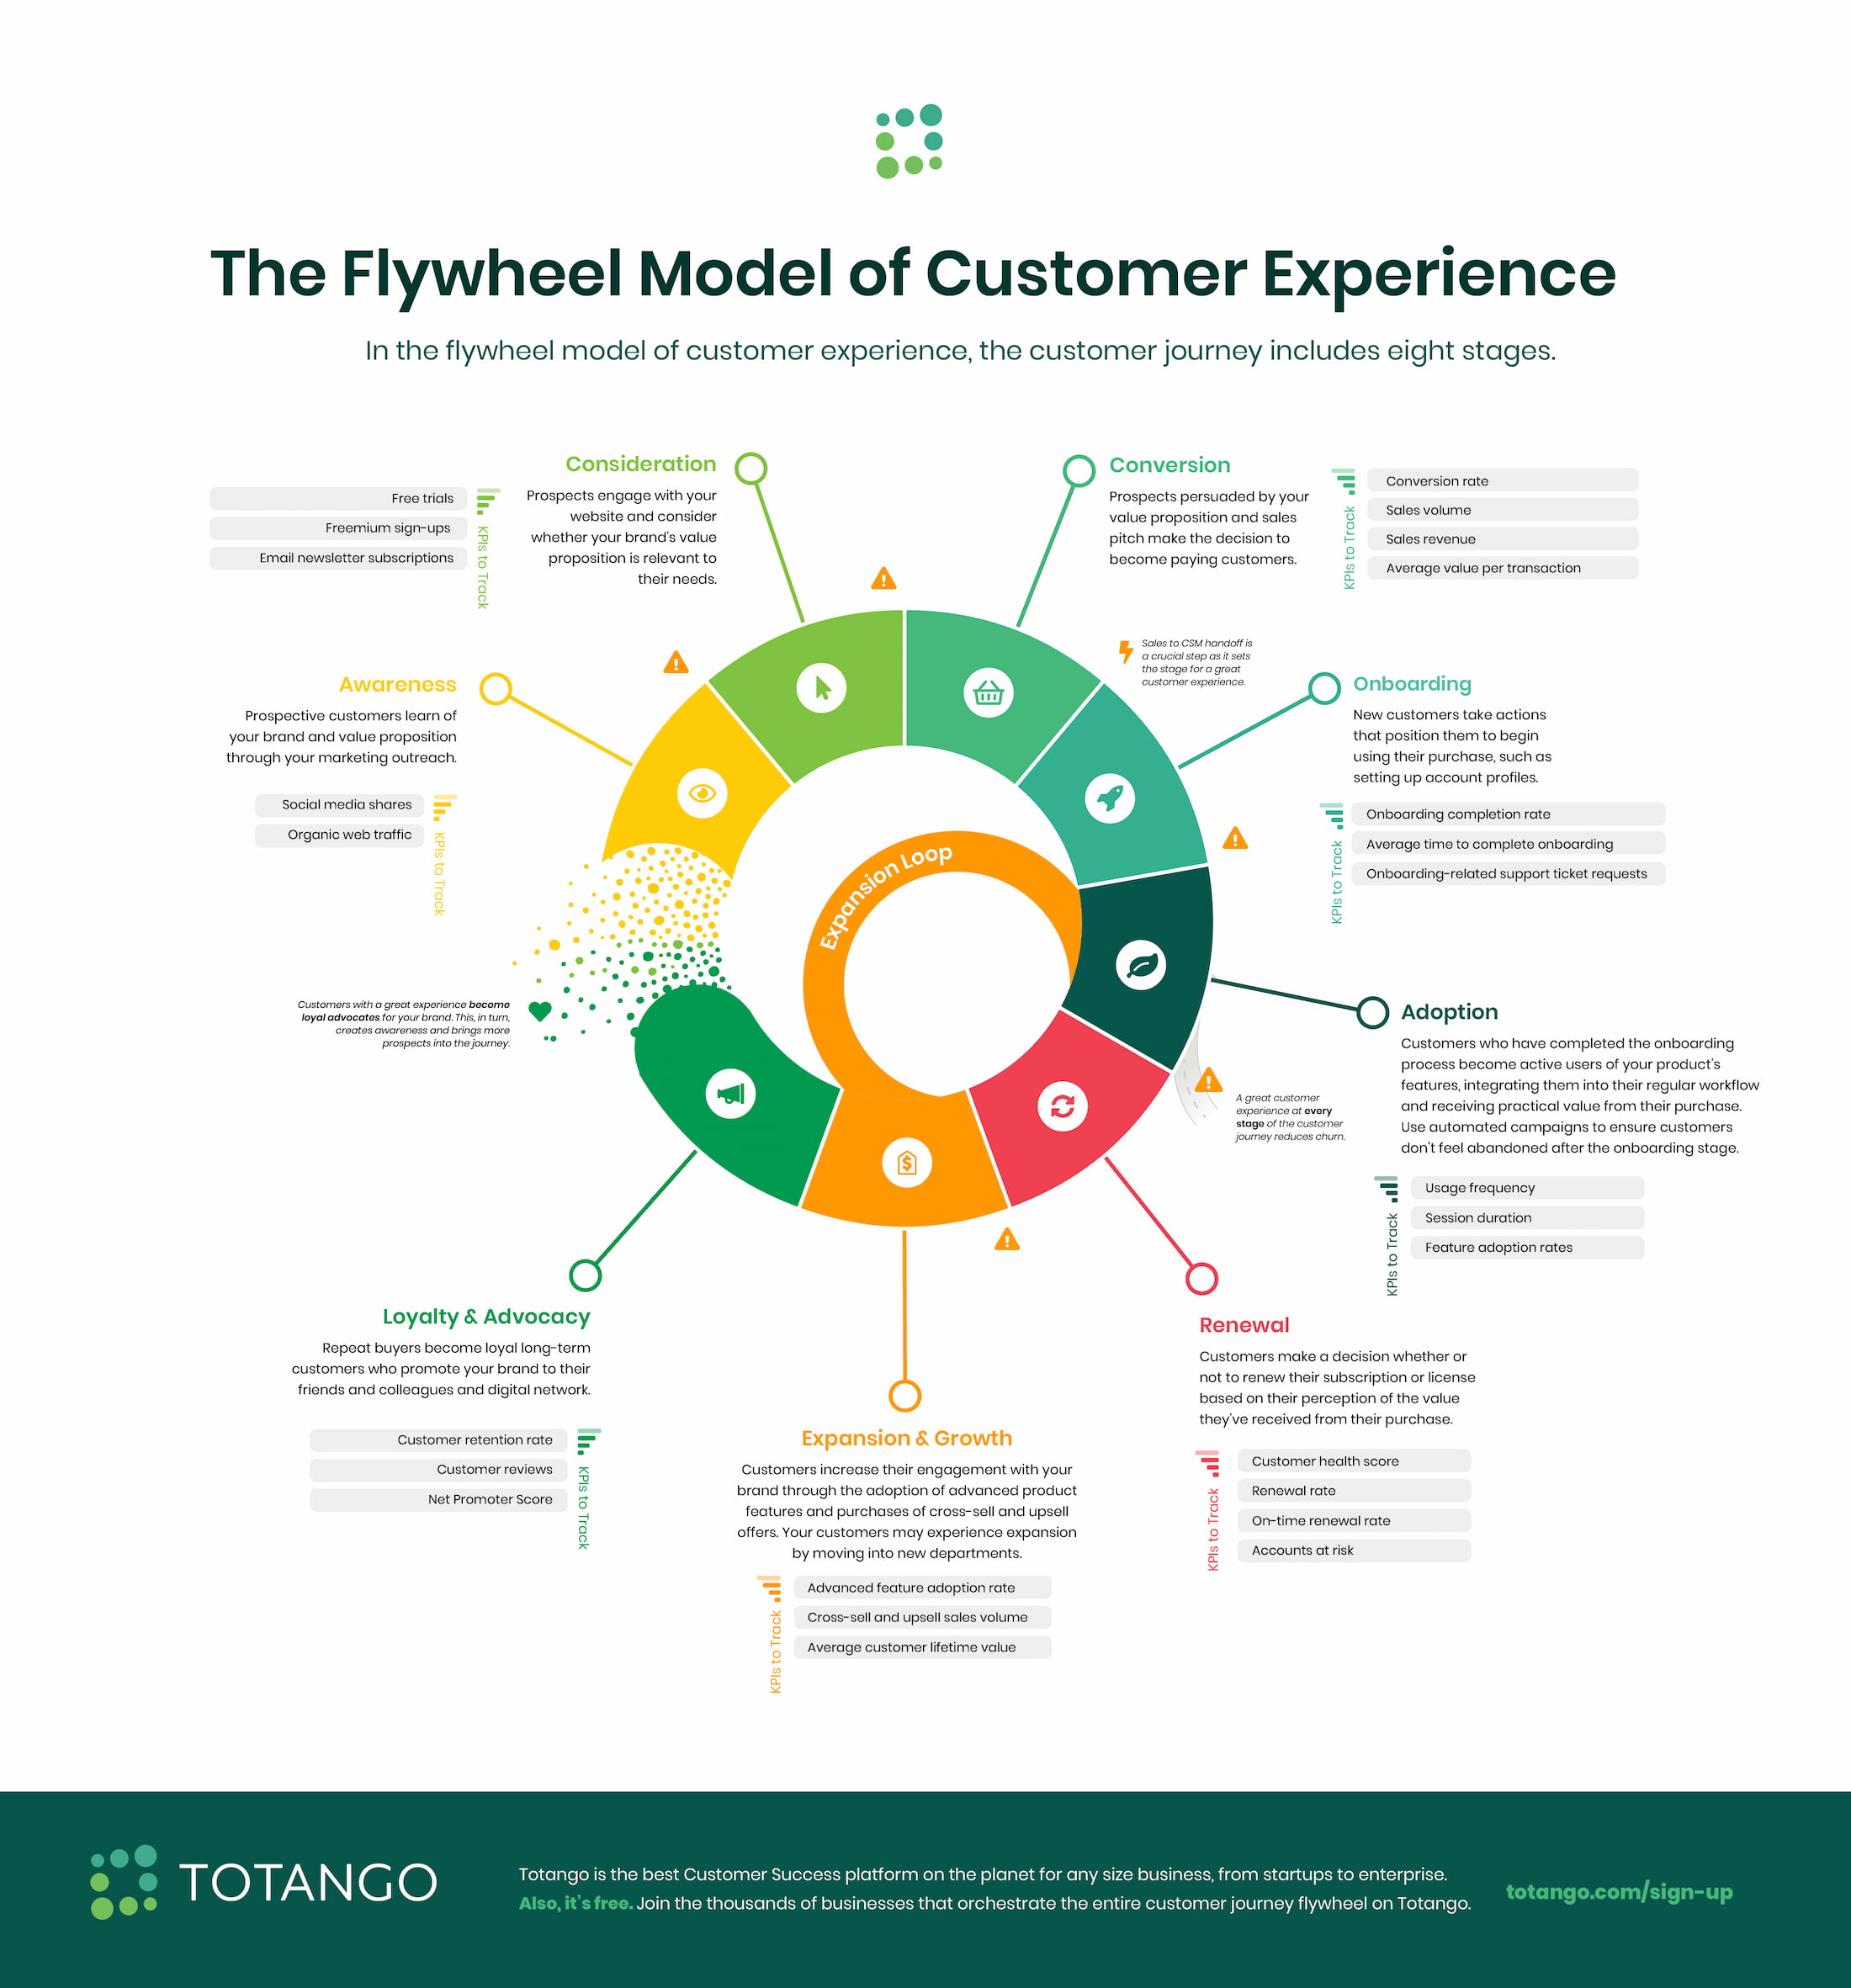 The Flywheel Model of Customer Experience